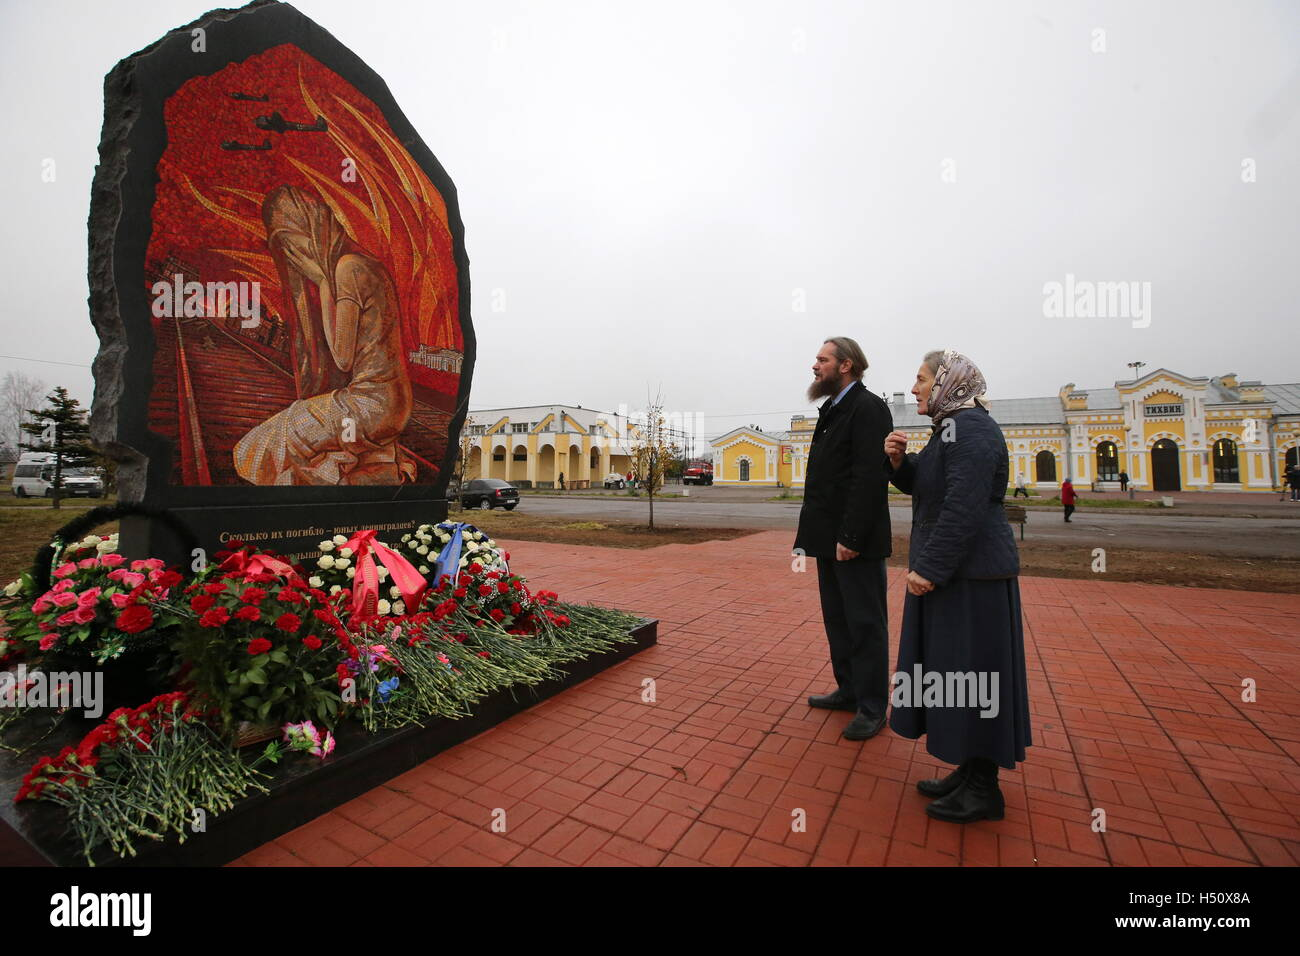 TIKHVIN, LENINGRAD REGION, RUSSIA - OCTOBER 14, 2016: A war memorial unveiled to mark the 75th anniversary of the - Stock Image